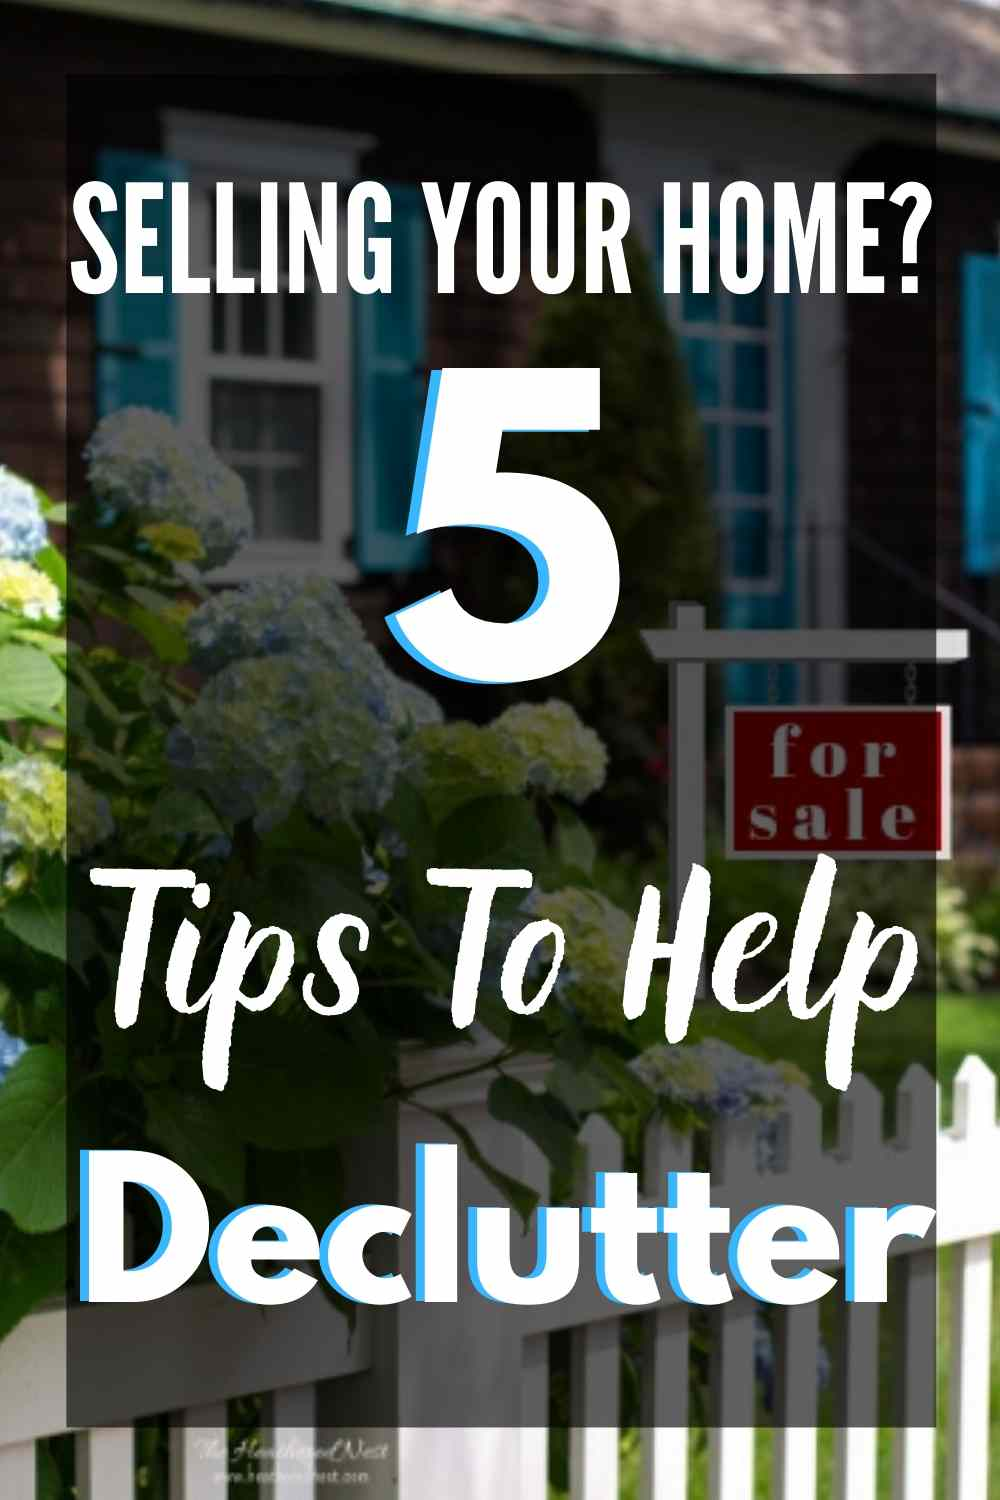 5 Expert Decluttering Tips For When You're Preparing To Sell Your Home